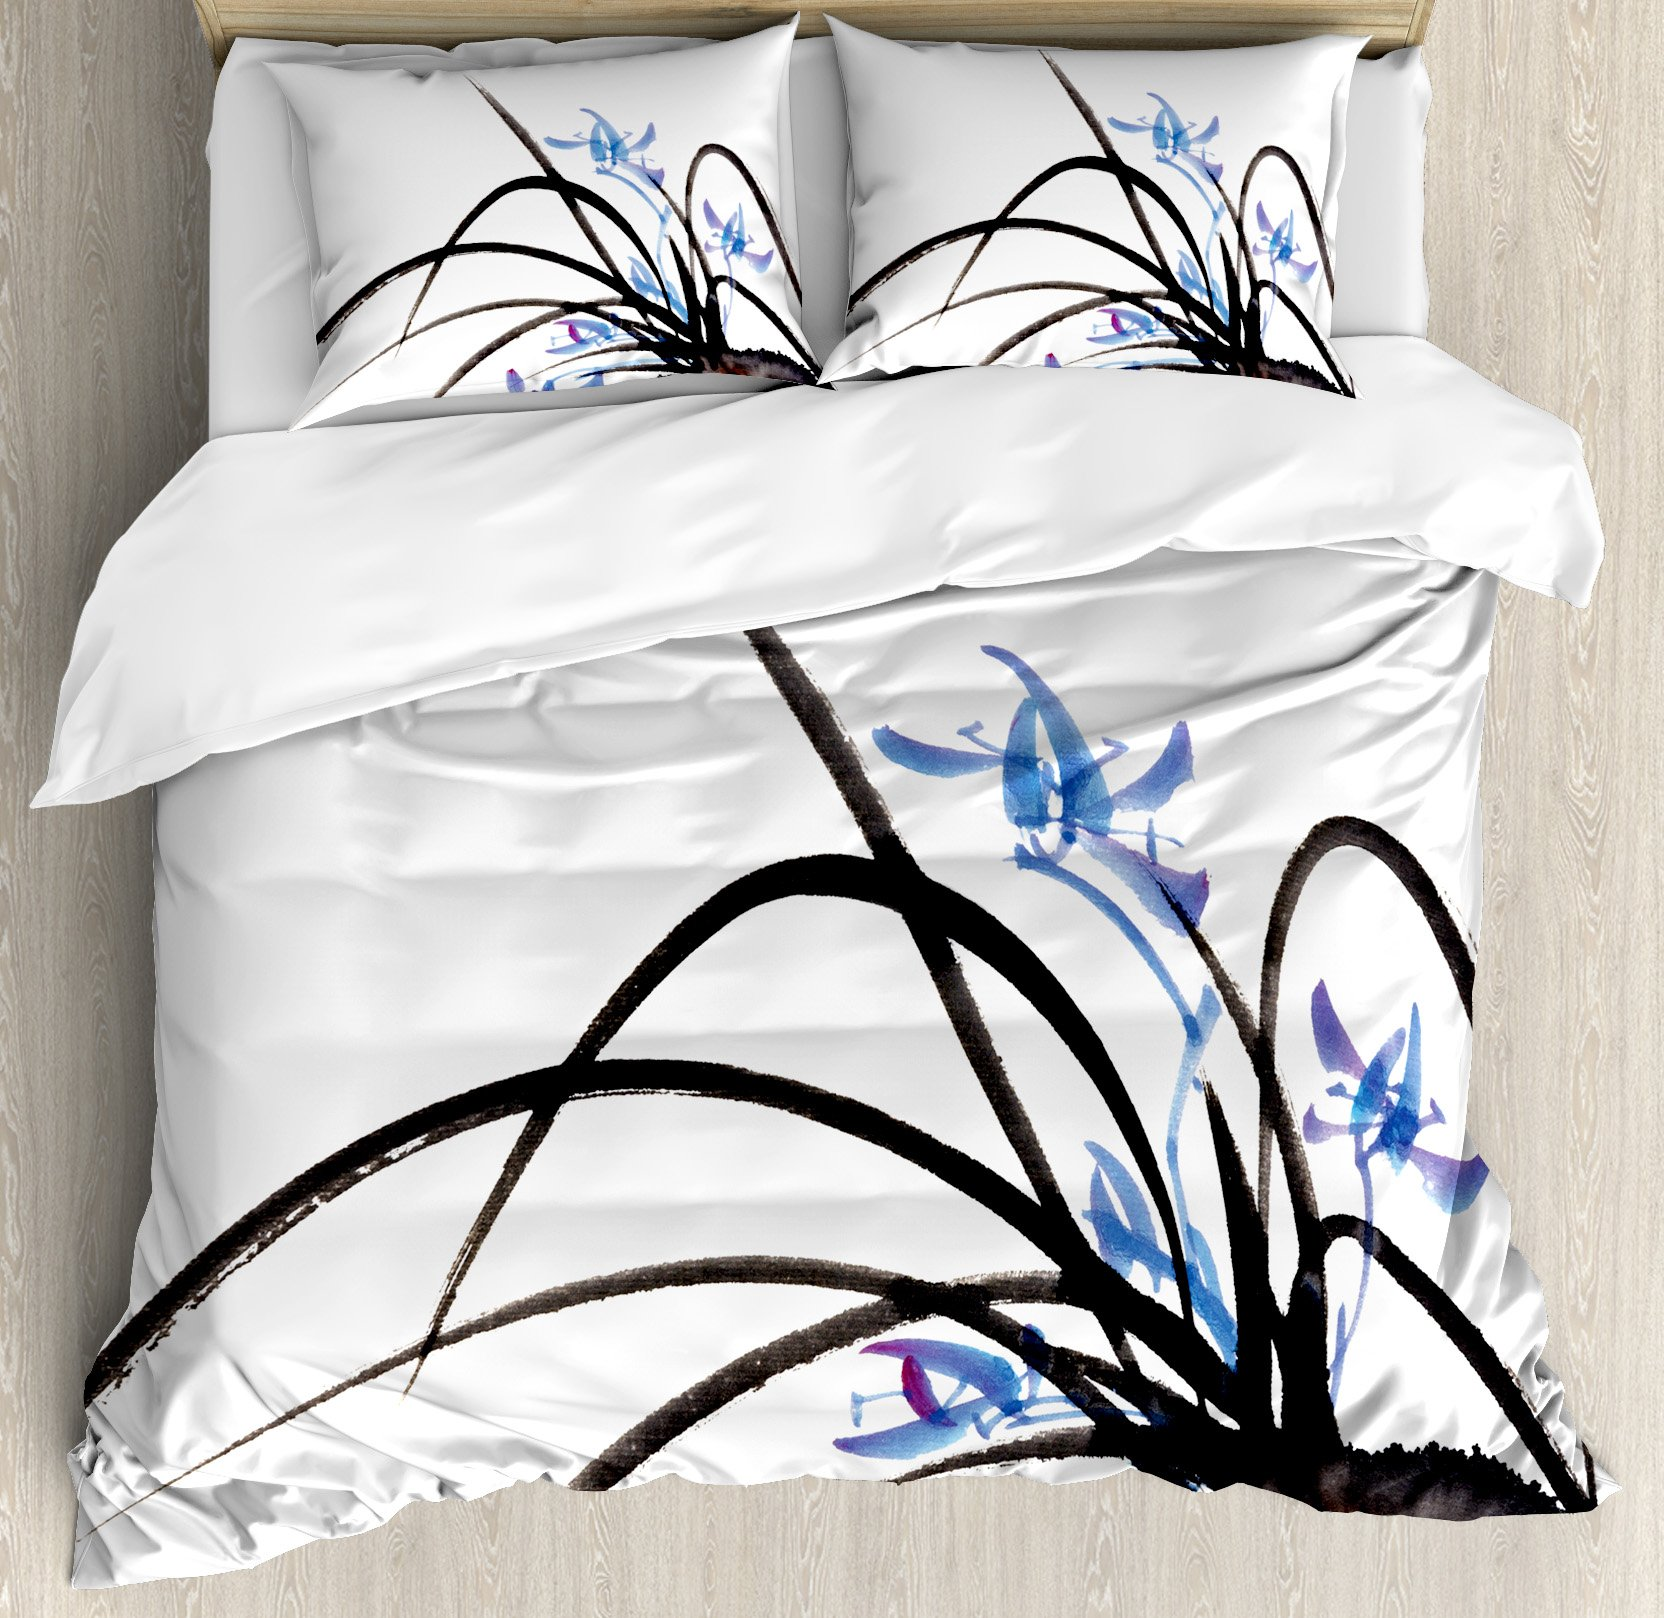 Asian Decor Duvet Cover Set by Ambesonne, Classic Asian Oriental Ink Painting of Orchid Artistic Design Decorative Artwork, 3 Piece Bedding Set with Pillow Shams, Queen / Full, Black Blue White by Ambesonne